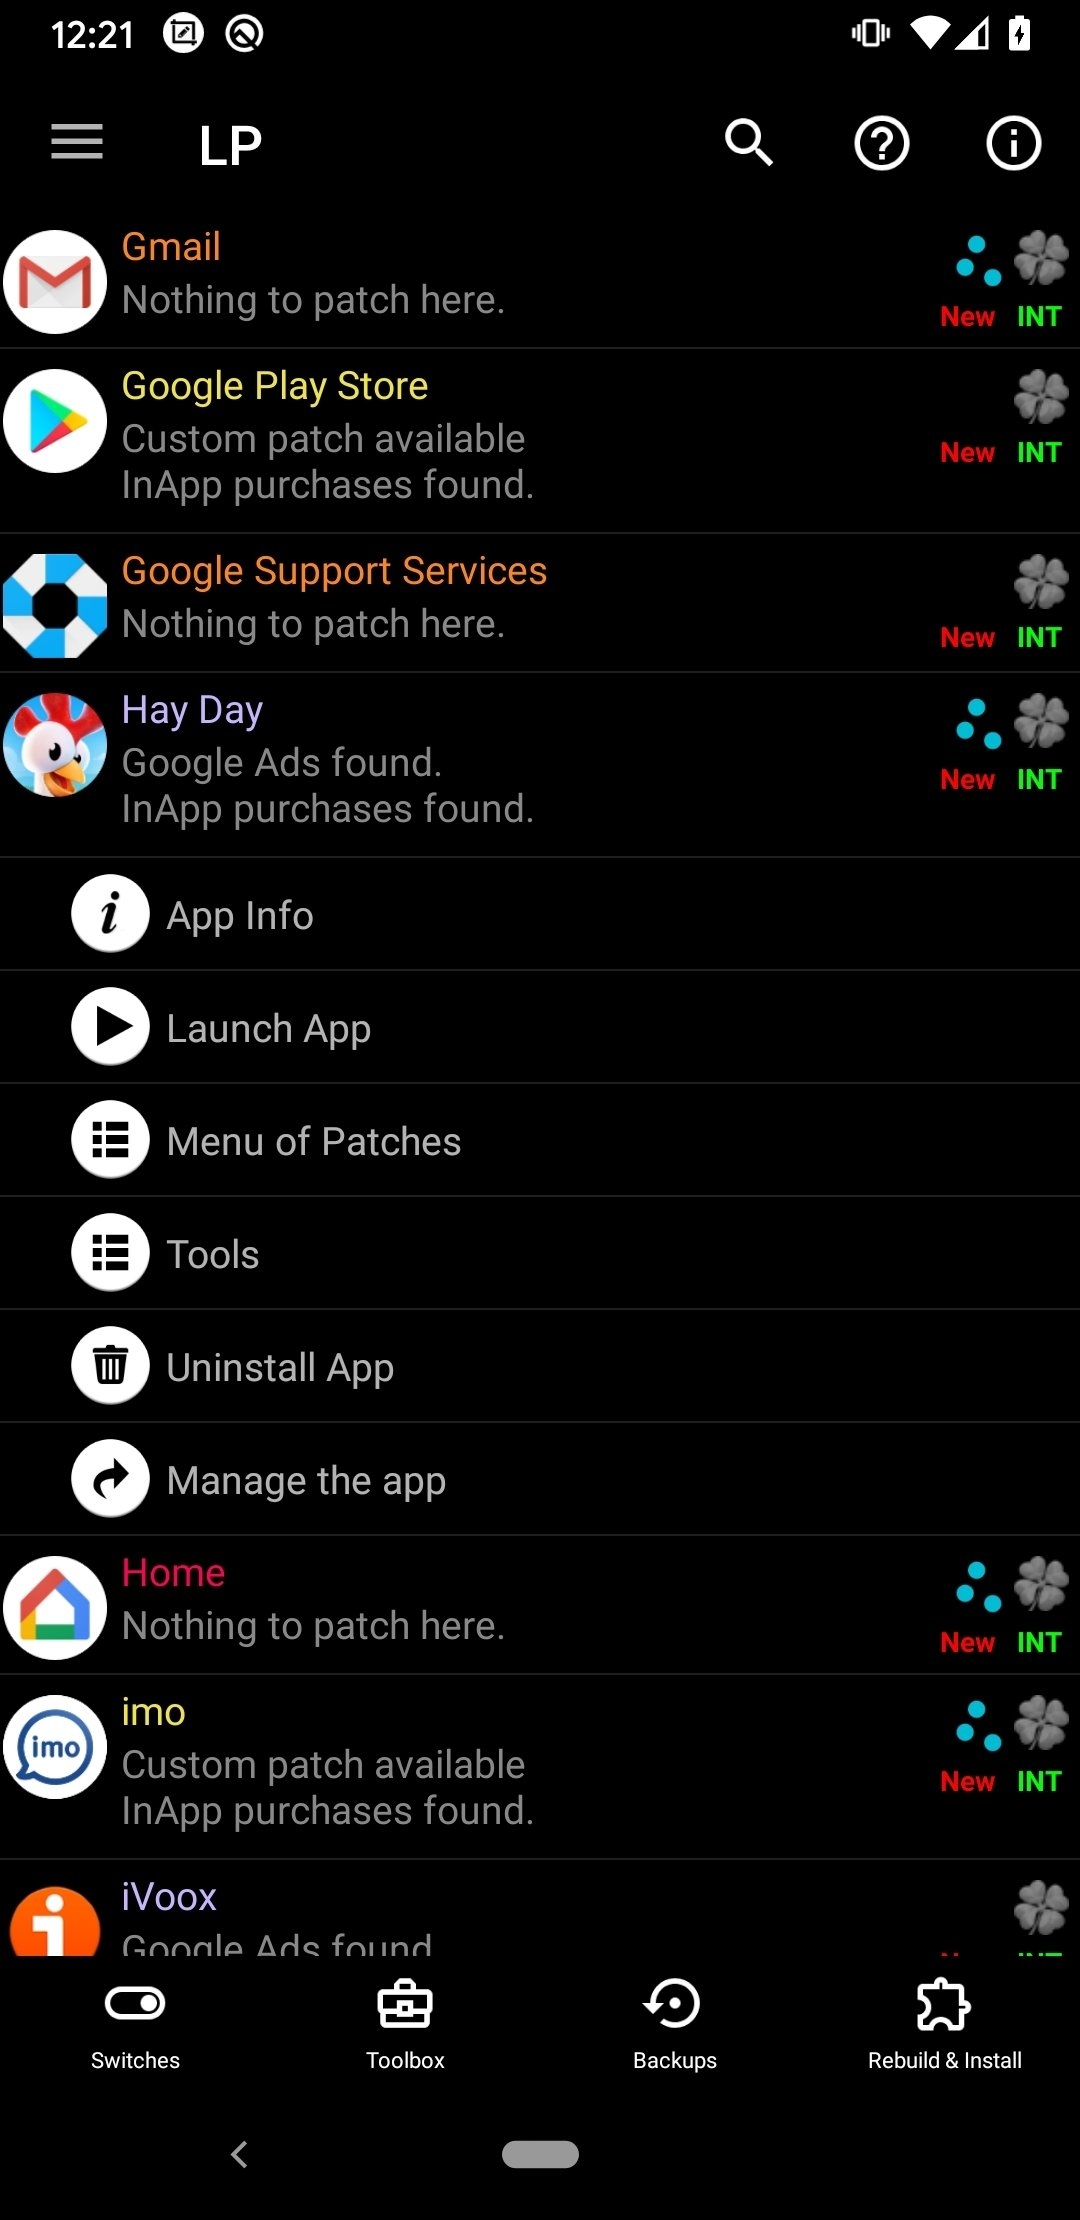 Lucky Patcher APK Download - Latest V626 For Android Device